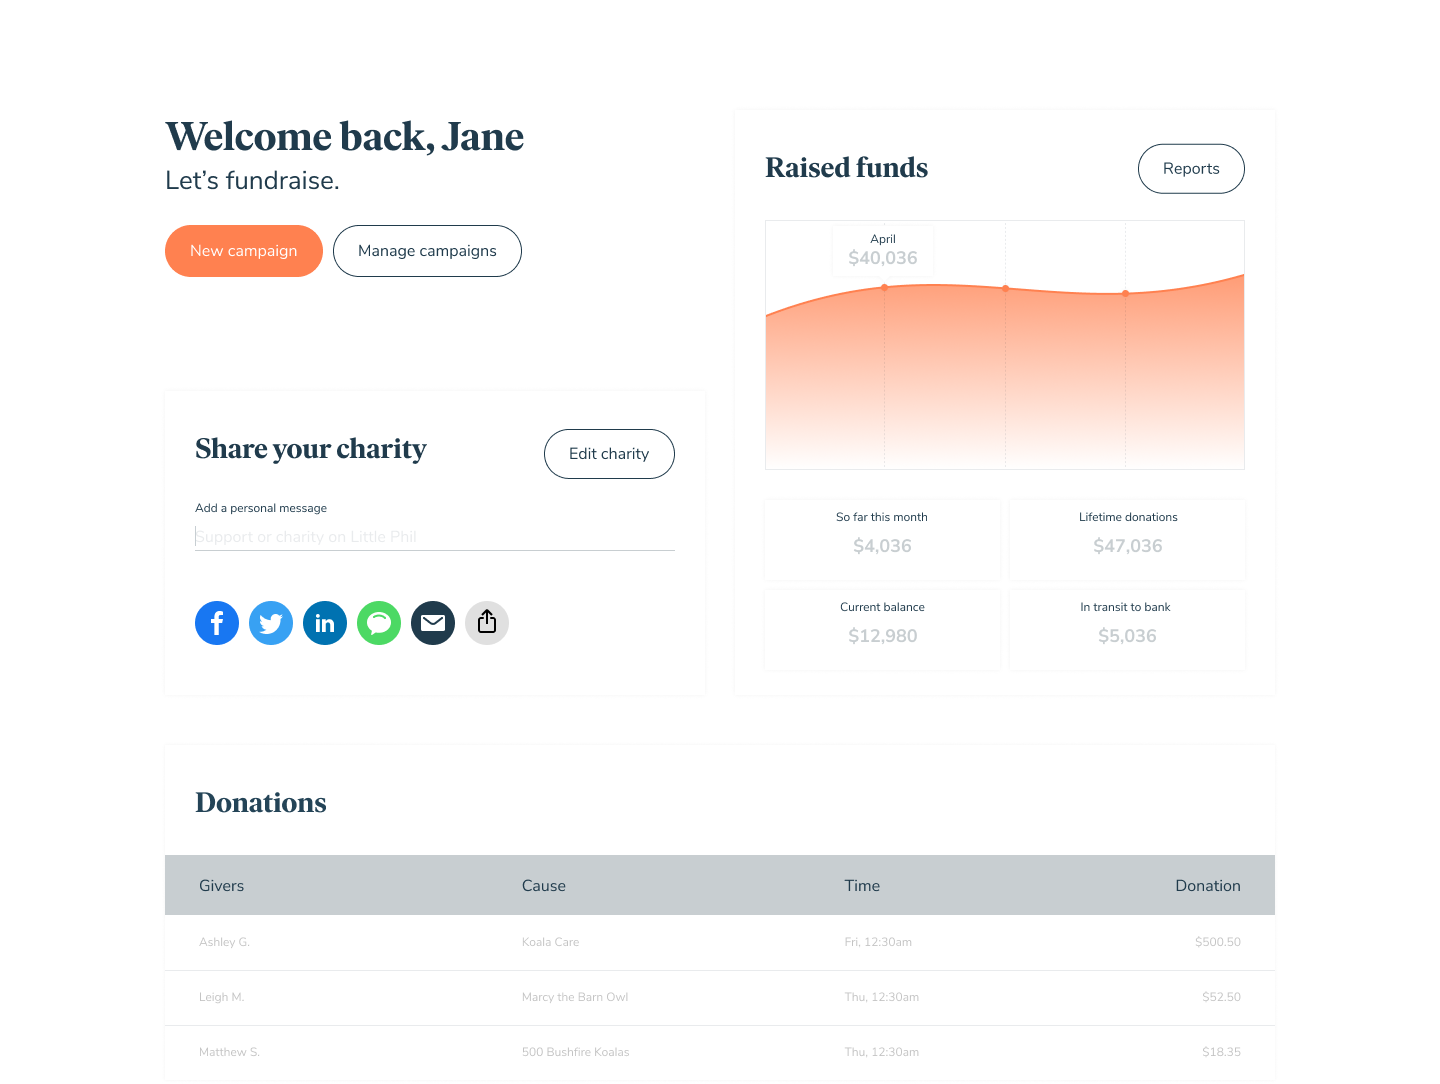 Little Phil's intuitive dashboard for charities to prosper.